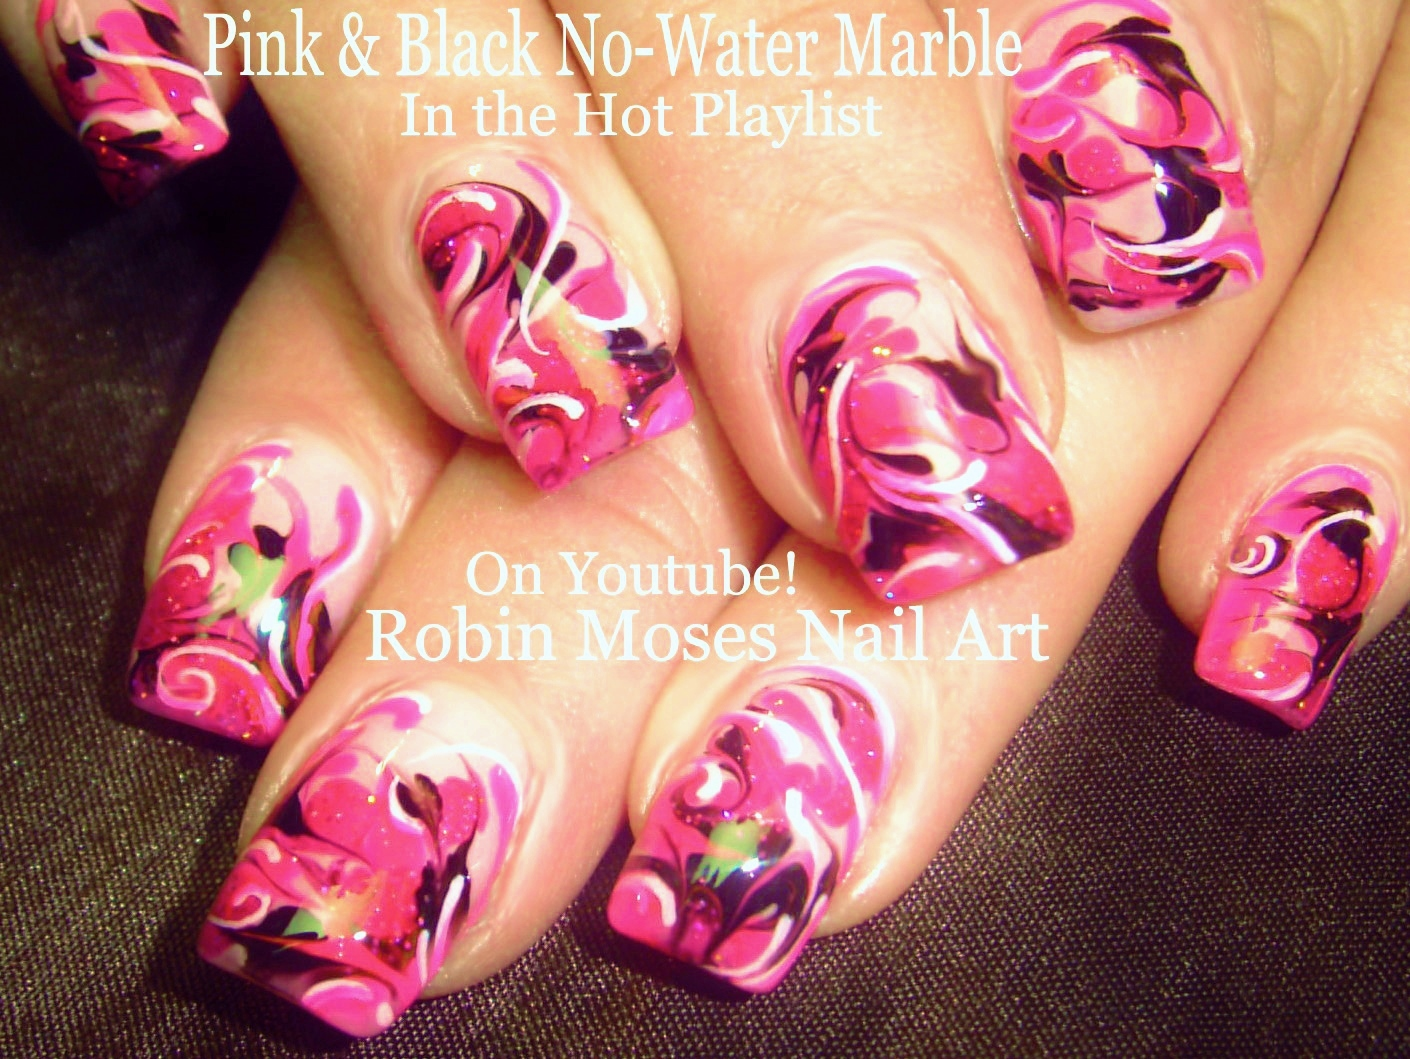 Nail art by robin moses up for monday hot pink no water marble nail art tutorial diy marble nails hot pink nail with no water needed nail design solutioingenieria Images